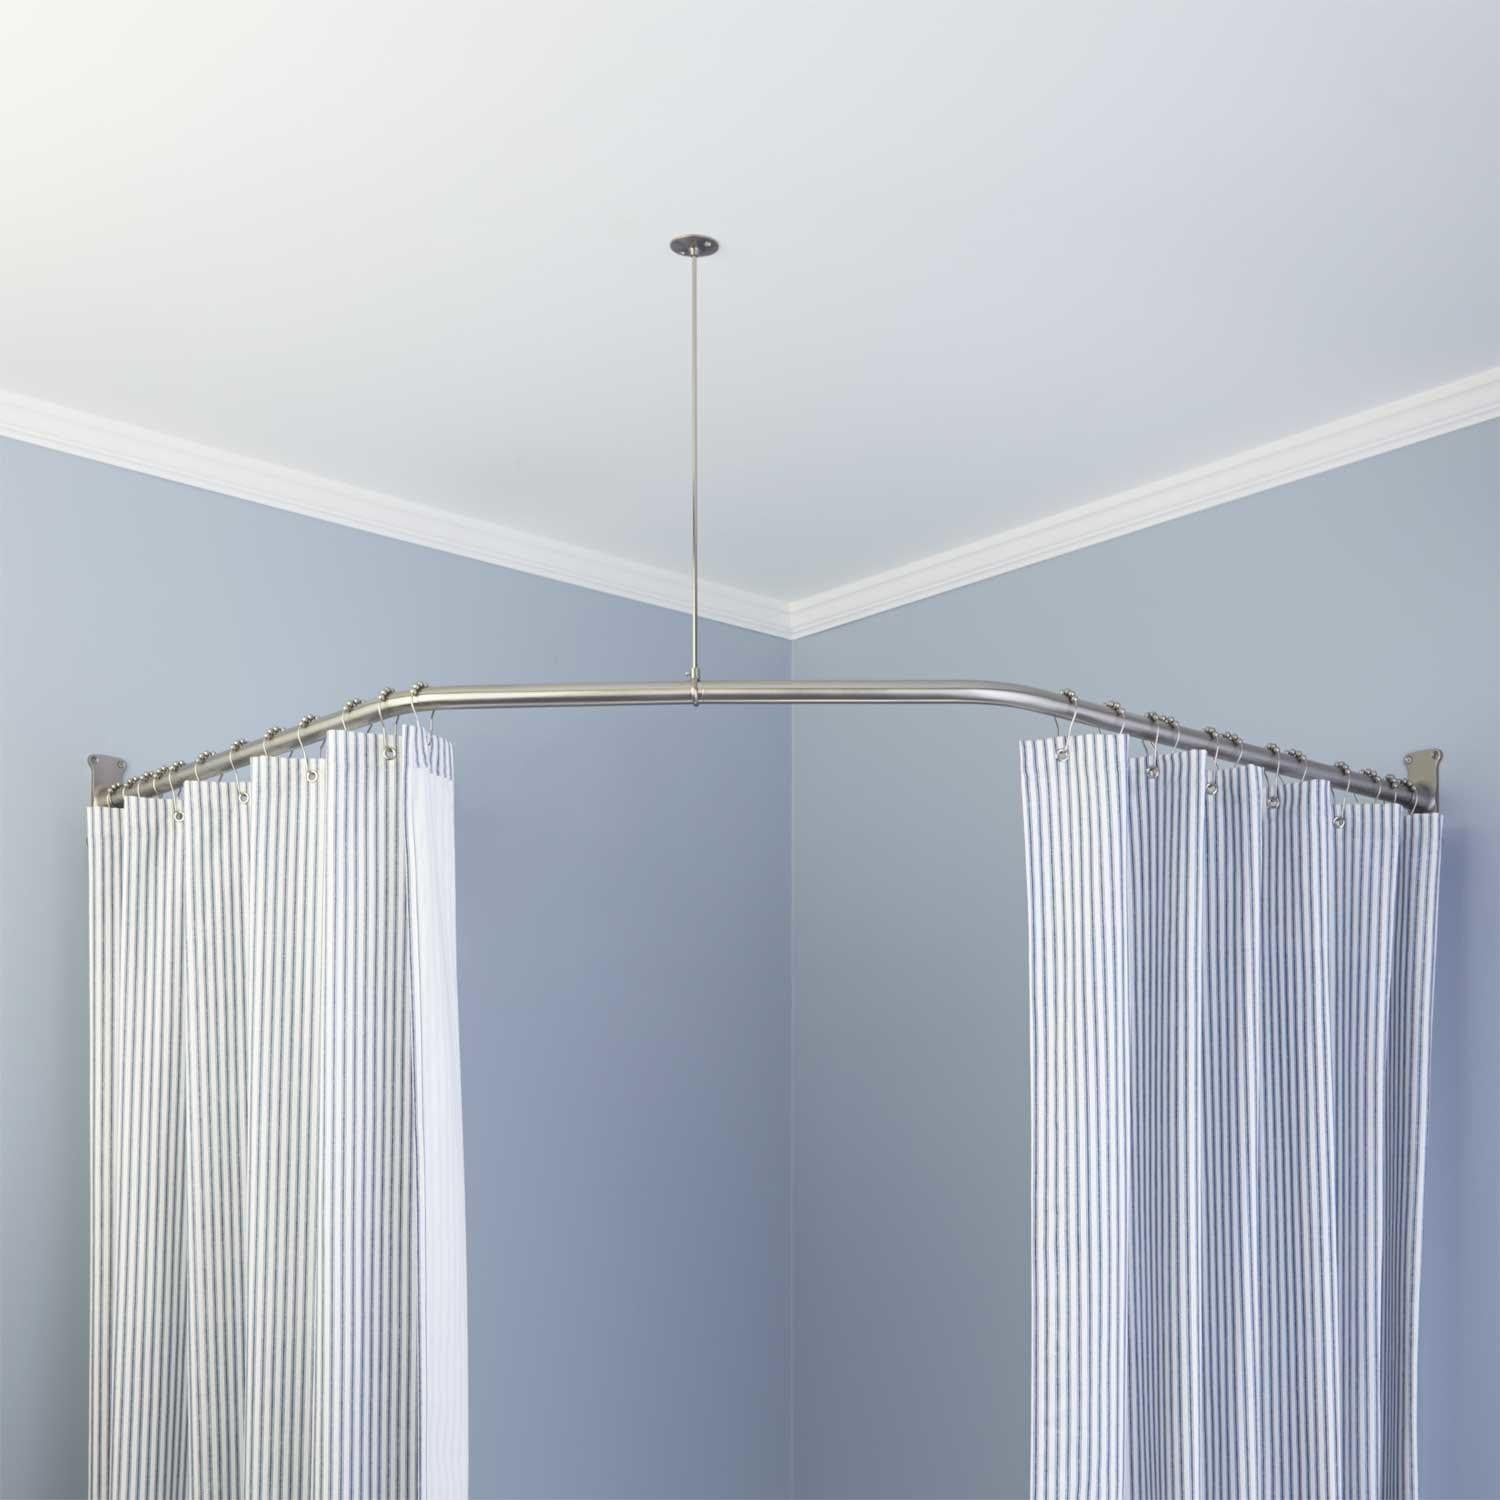 Neo Angle Solid Brass Shower Rod And Ceiling Support Shower Curtain Rods Bathroom Shower Curtain Rods Neo Angle Shower Shower Rod